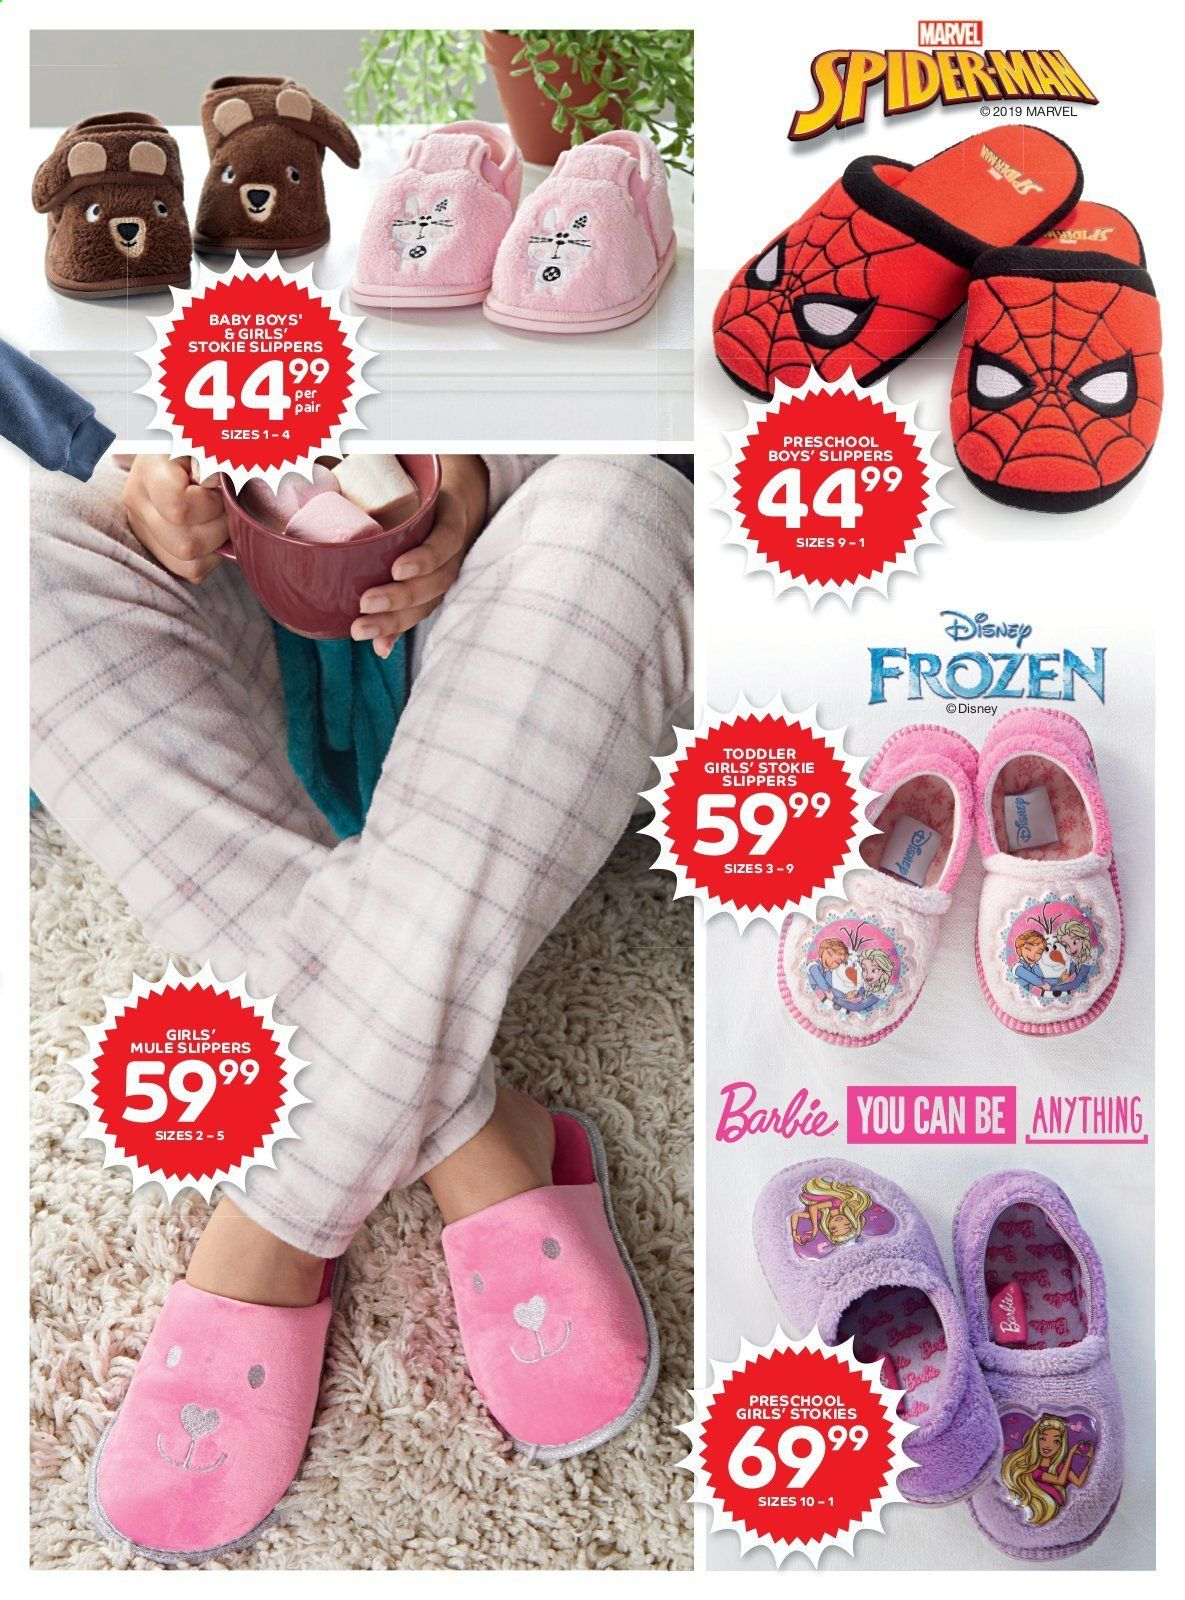 PEP Stores catalogue  - 04.26.2019 - 05.30.2019. Page 3.